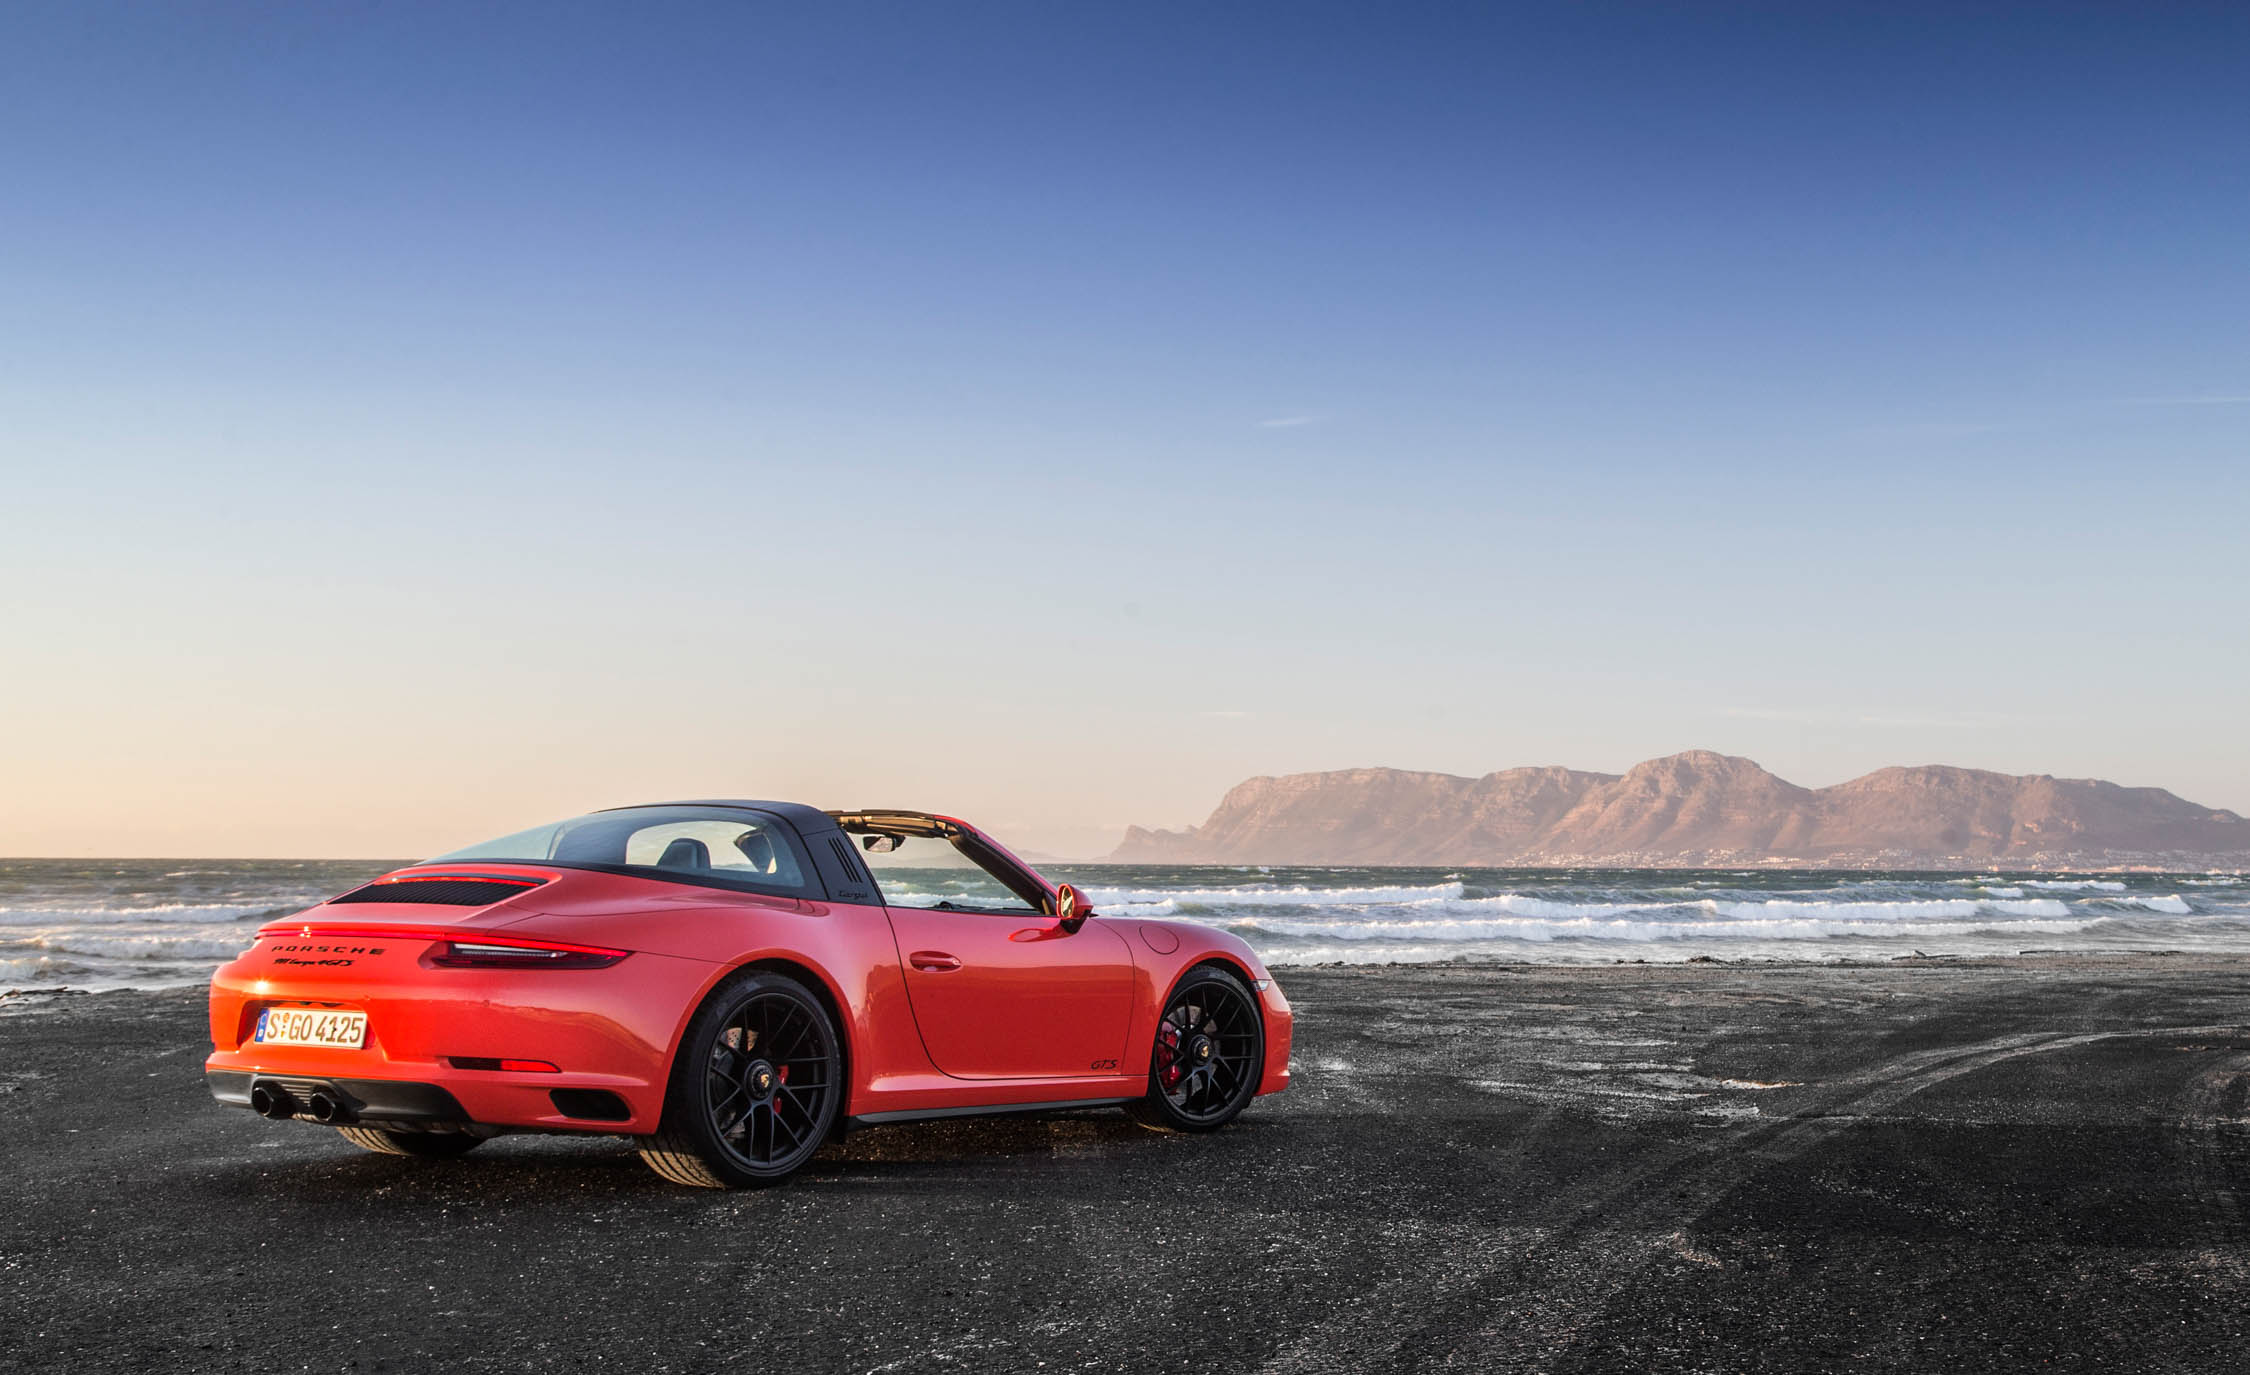 2017 Porsche 911 Targa 4 GTS Exterior Rear And Side (Photo 61 of 97)